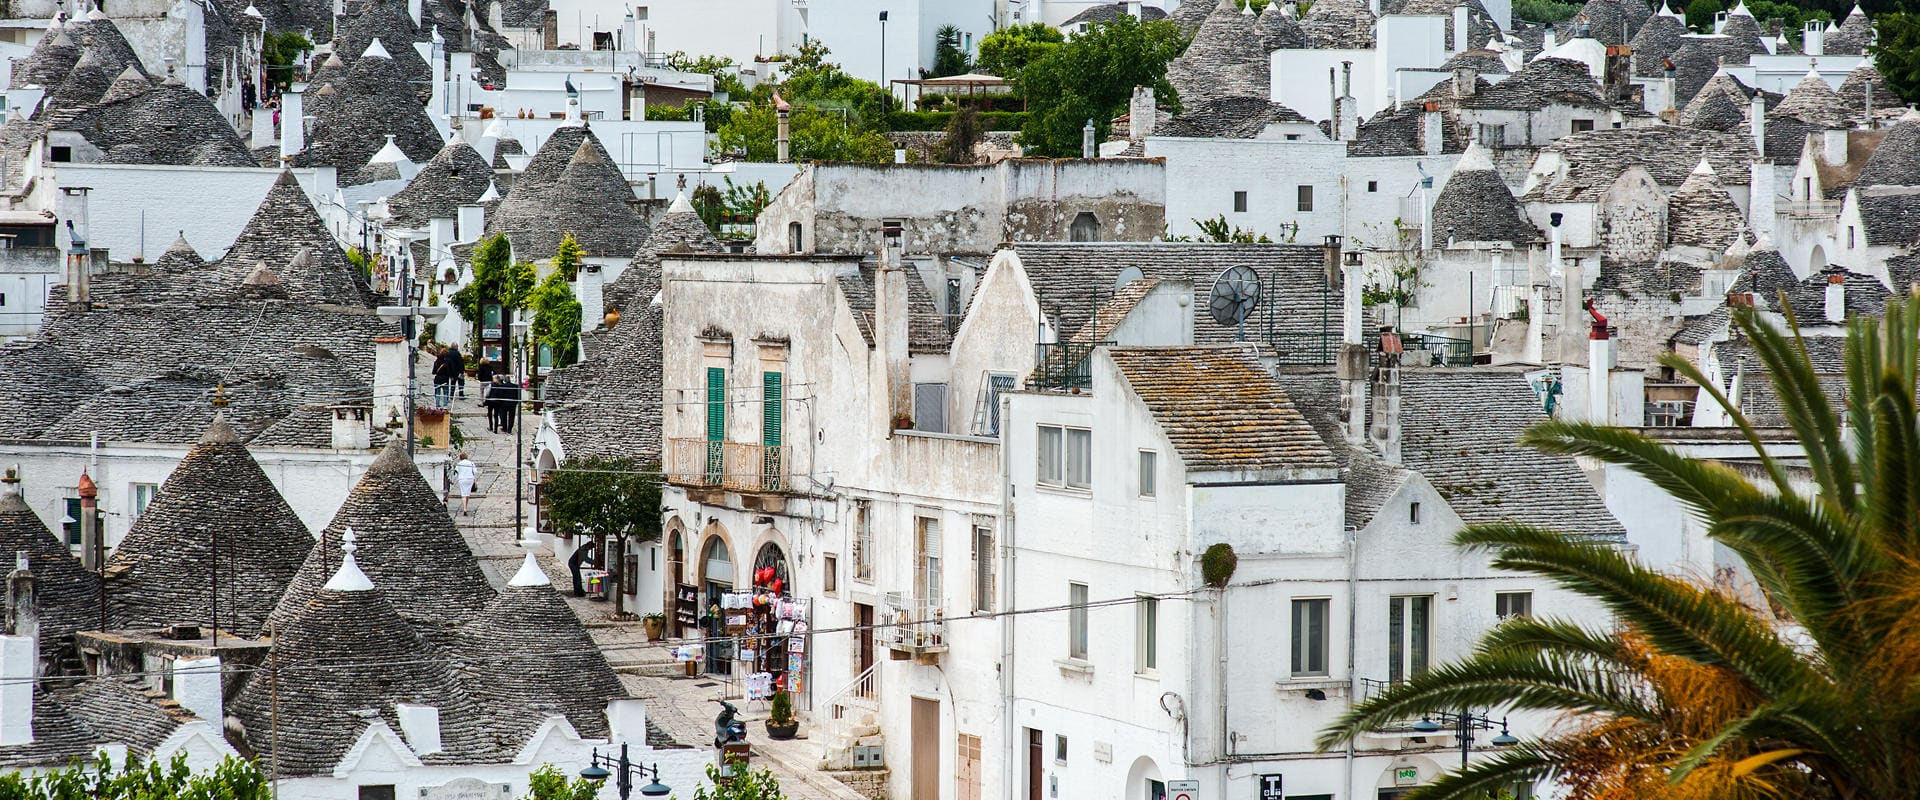 The Grantourismo Travels Guide to Alberobello, Italy. Copyright © 2017 Terence Carter / Grantourismo. All Rights Reserved.